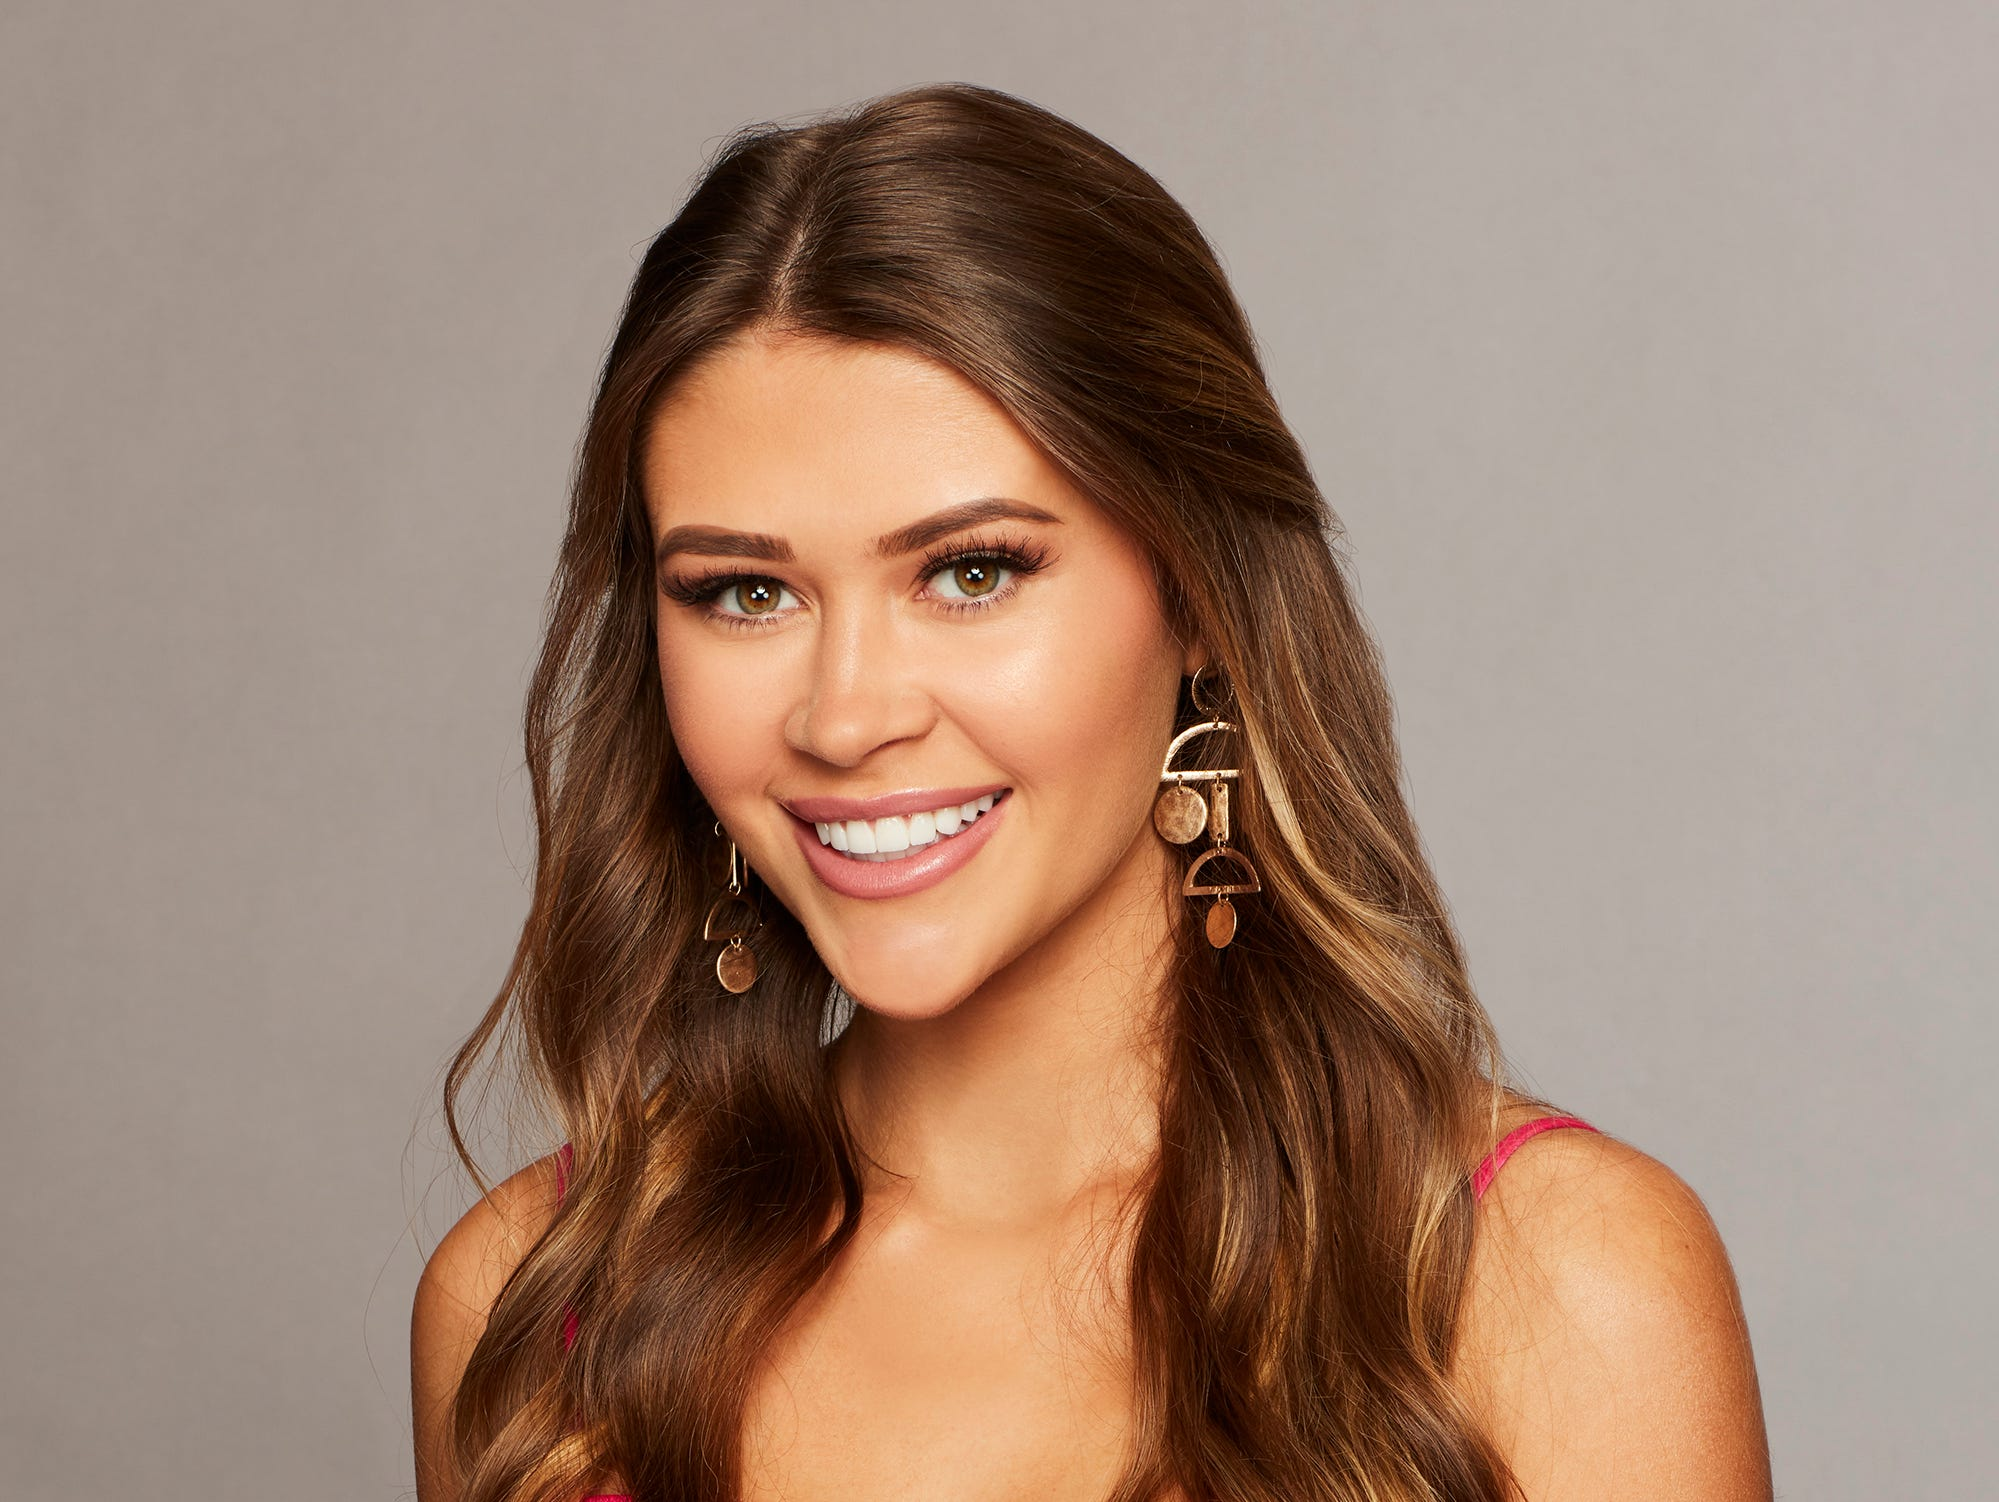 Caelynn: 23, Charlotte, North Carolina , Miss North Carolina 2018